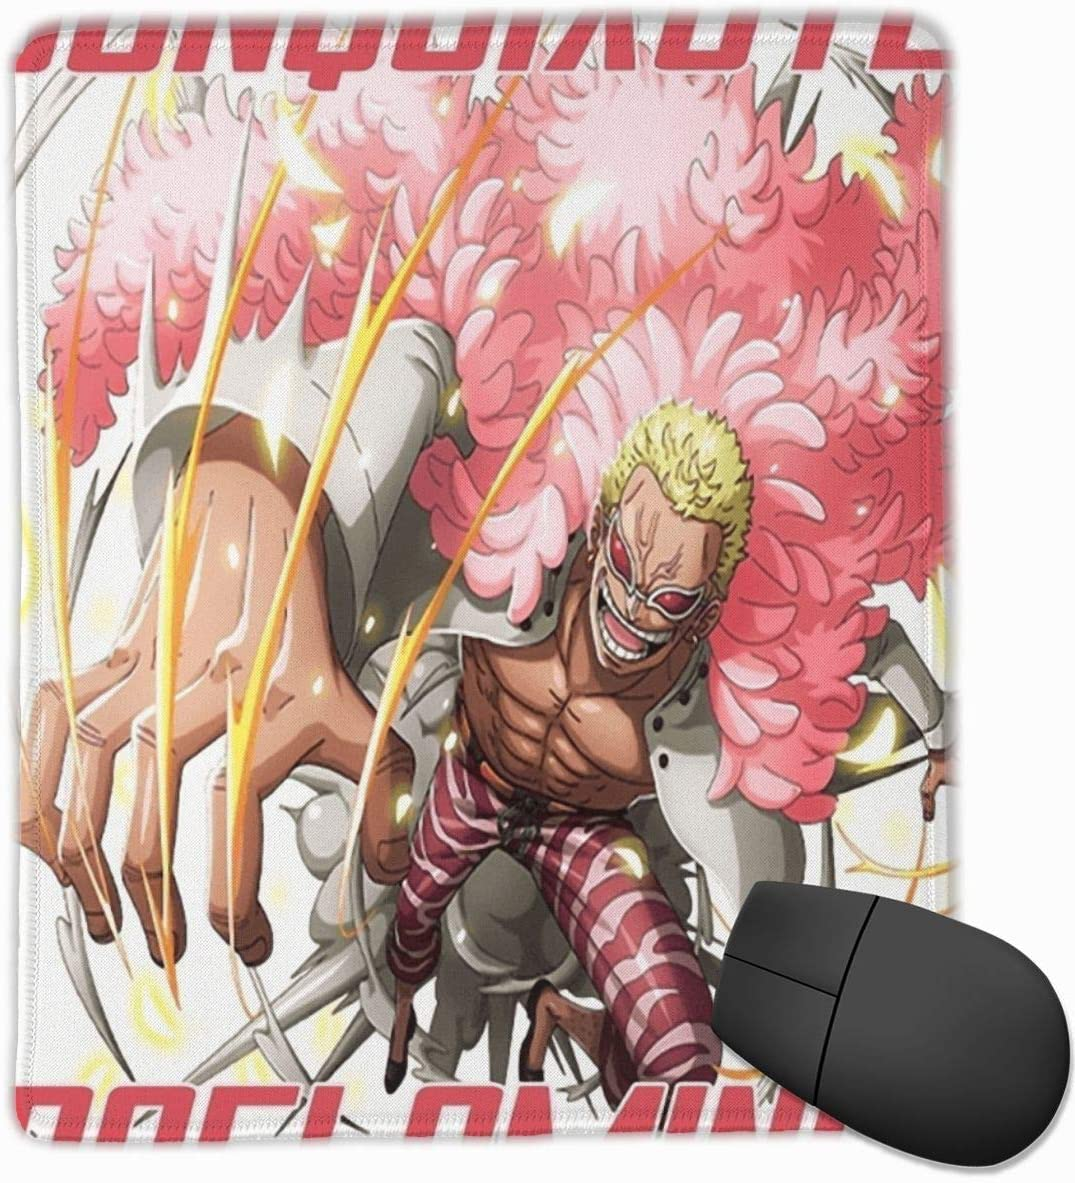 KEEHUA Doflamingo Attacks Graphic Non-Slip Rubber Mousepad Gaming Mouse Pad with Stitched Edge 10x12 in